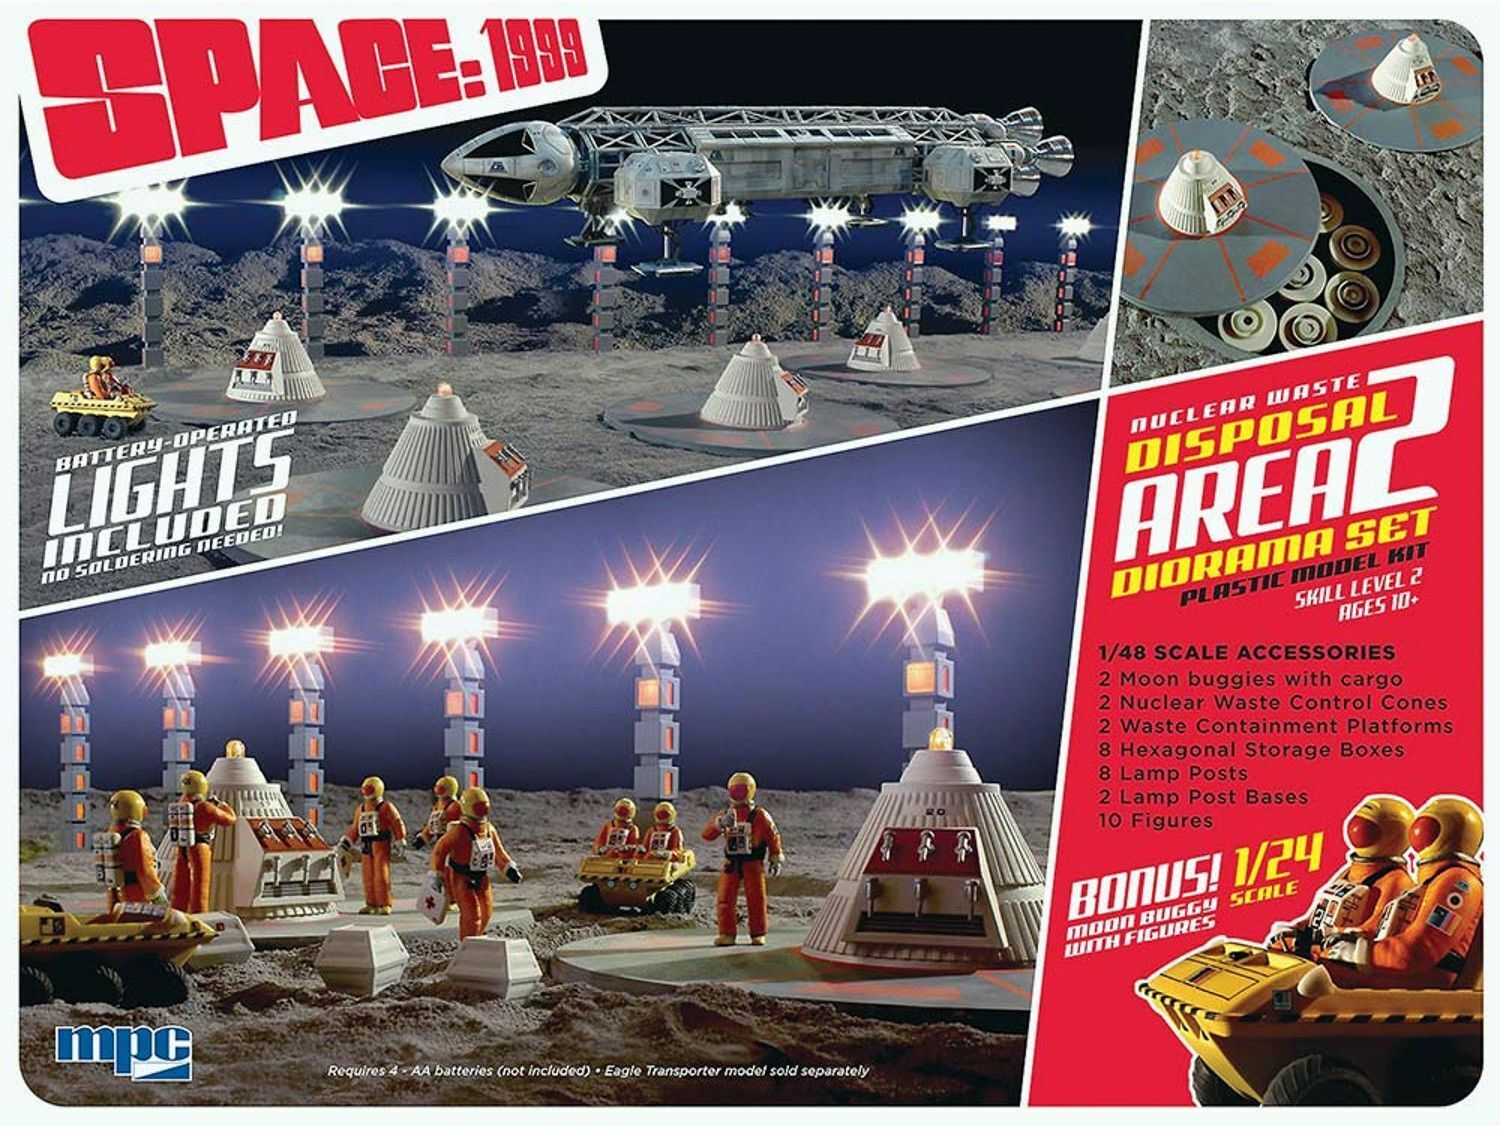 Space 1999 1//48 Nuclear Waste Disposal Area 2 Model Kit /& 1 Canister Sets.